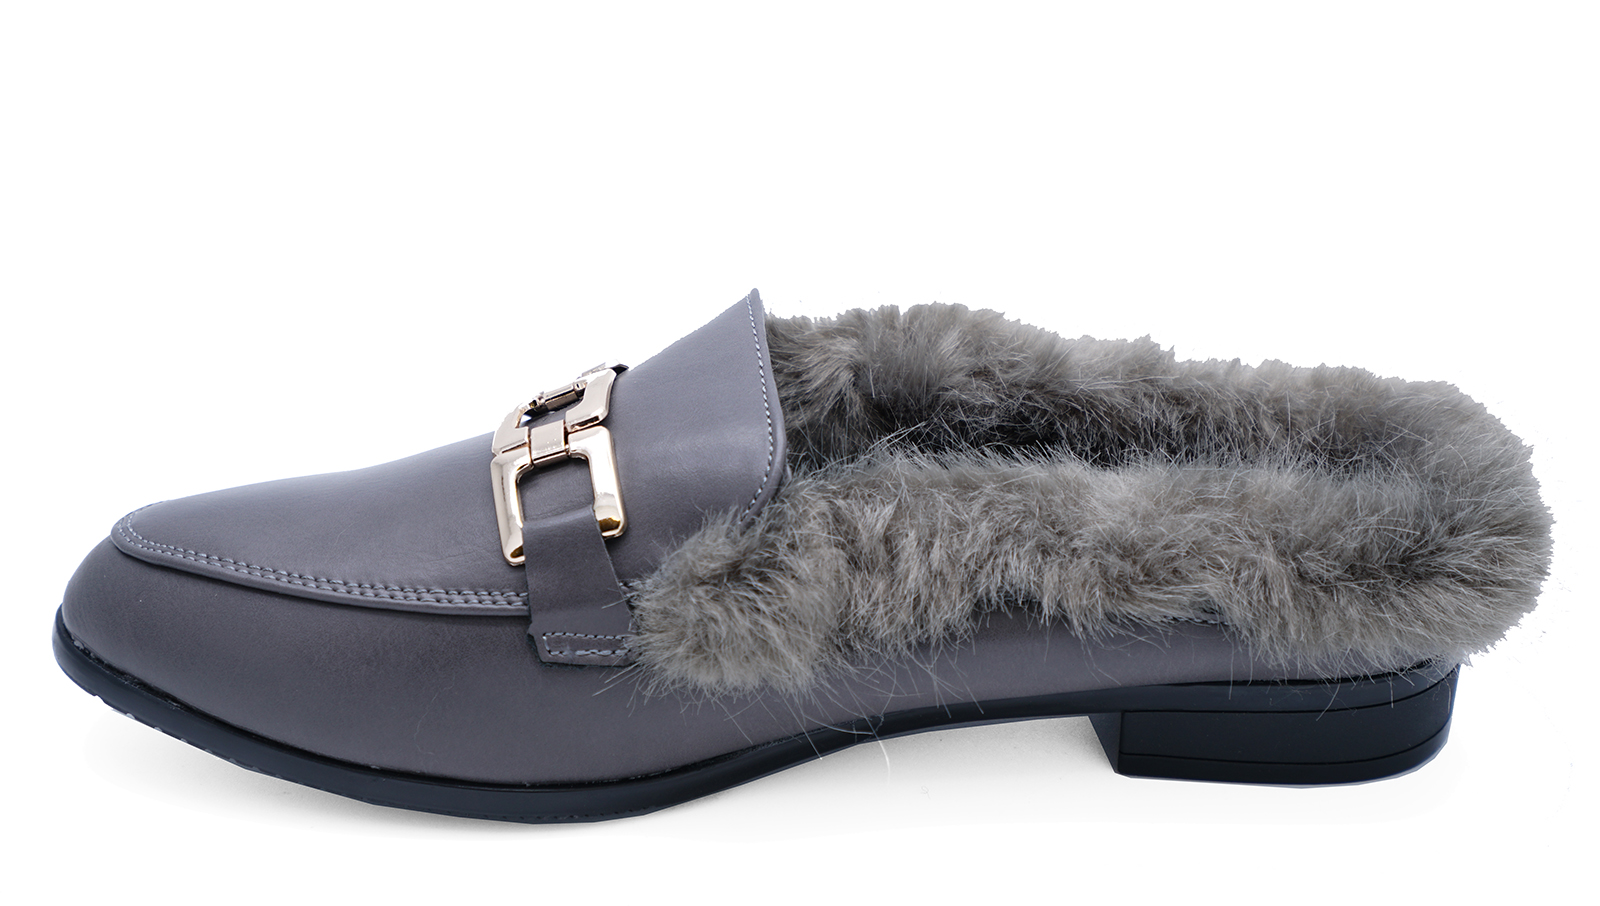 WOMENS FLAT GREY FUR LINED SLIP-ON SMART MULES LOAFERS SLIDERS SHOES SIZES 3-8